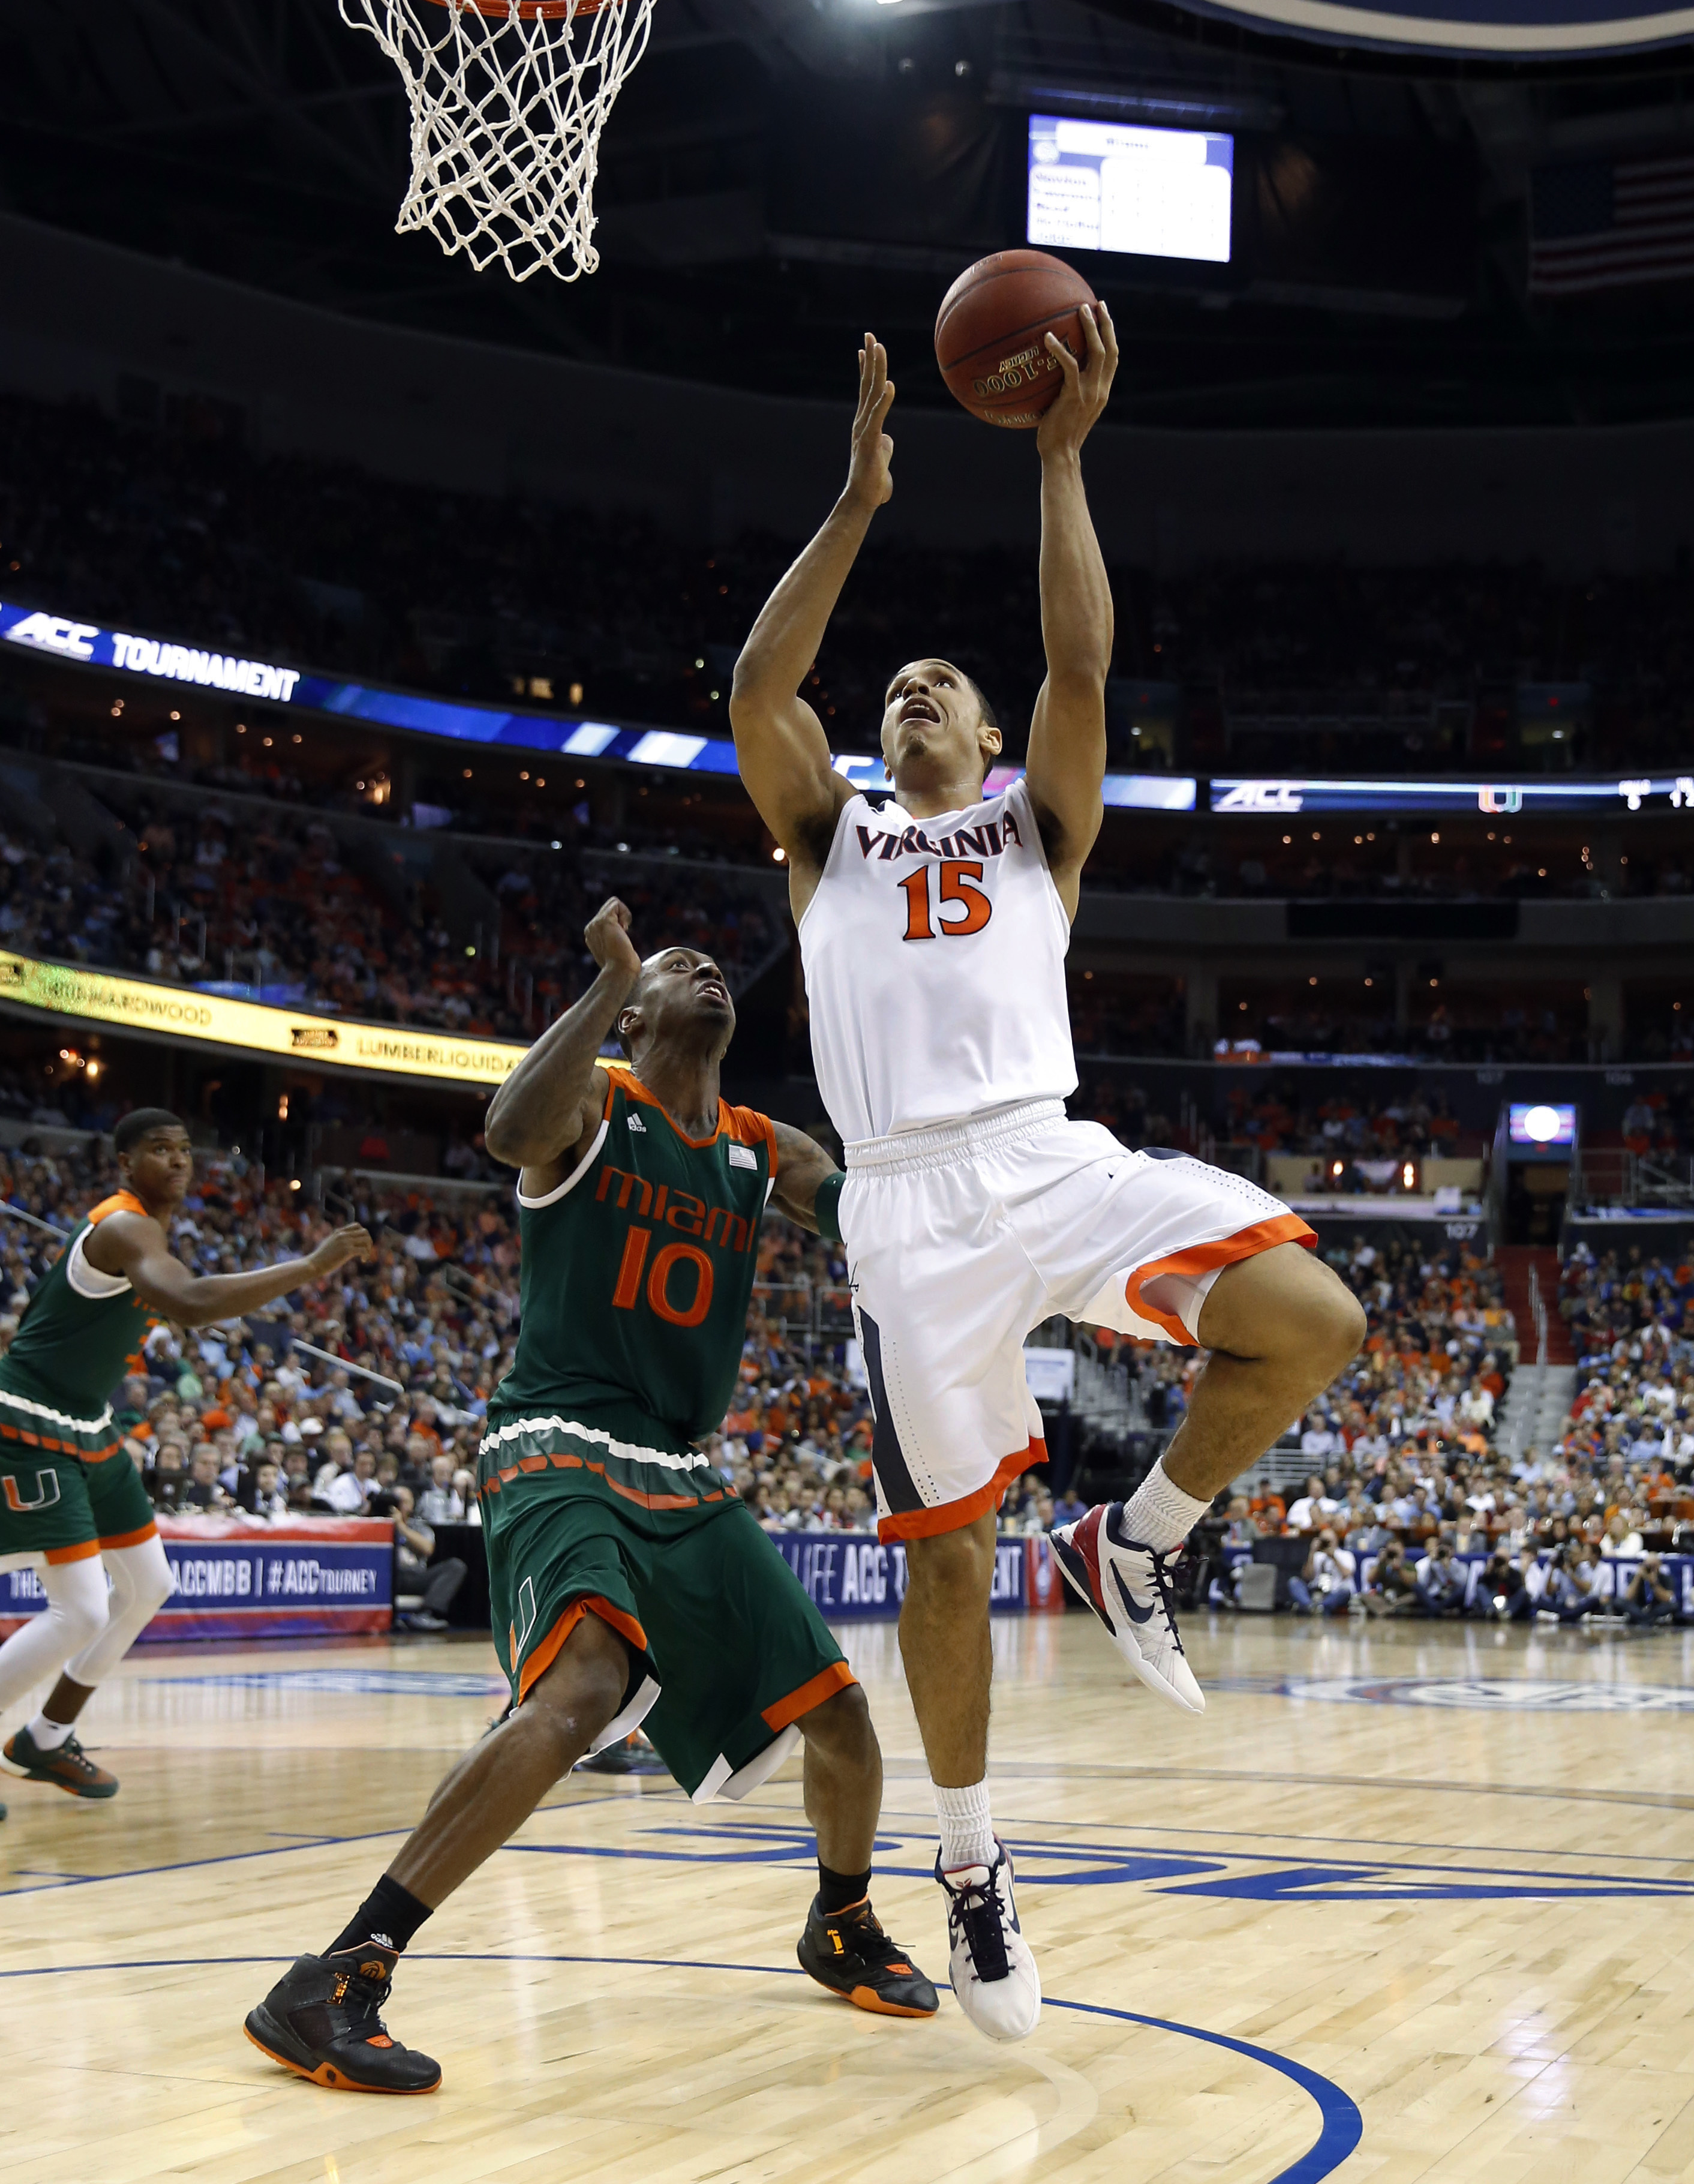 Virginia guard Malcolm Brogdon (15) shoots in front of Miami guard Sheldon McClellan (10) during the first half of an NCAA college basketball game in the Atlantic Coast Conference men's tournament, Friday, March 11, 2016, in Washington. (AP Photo/Alex Bra